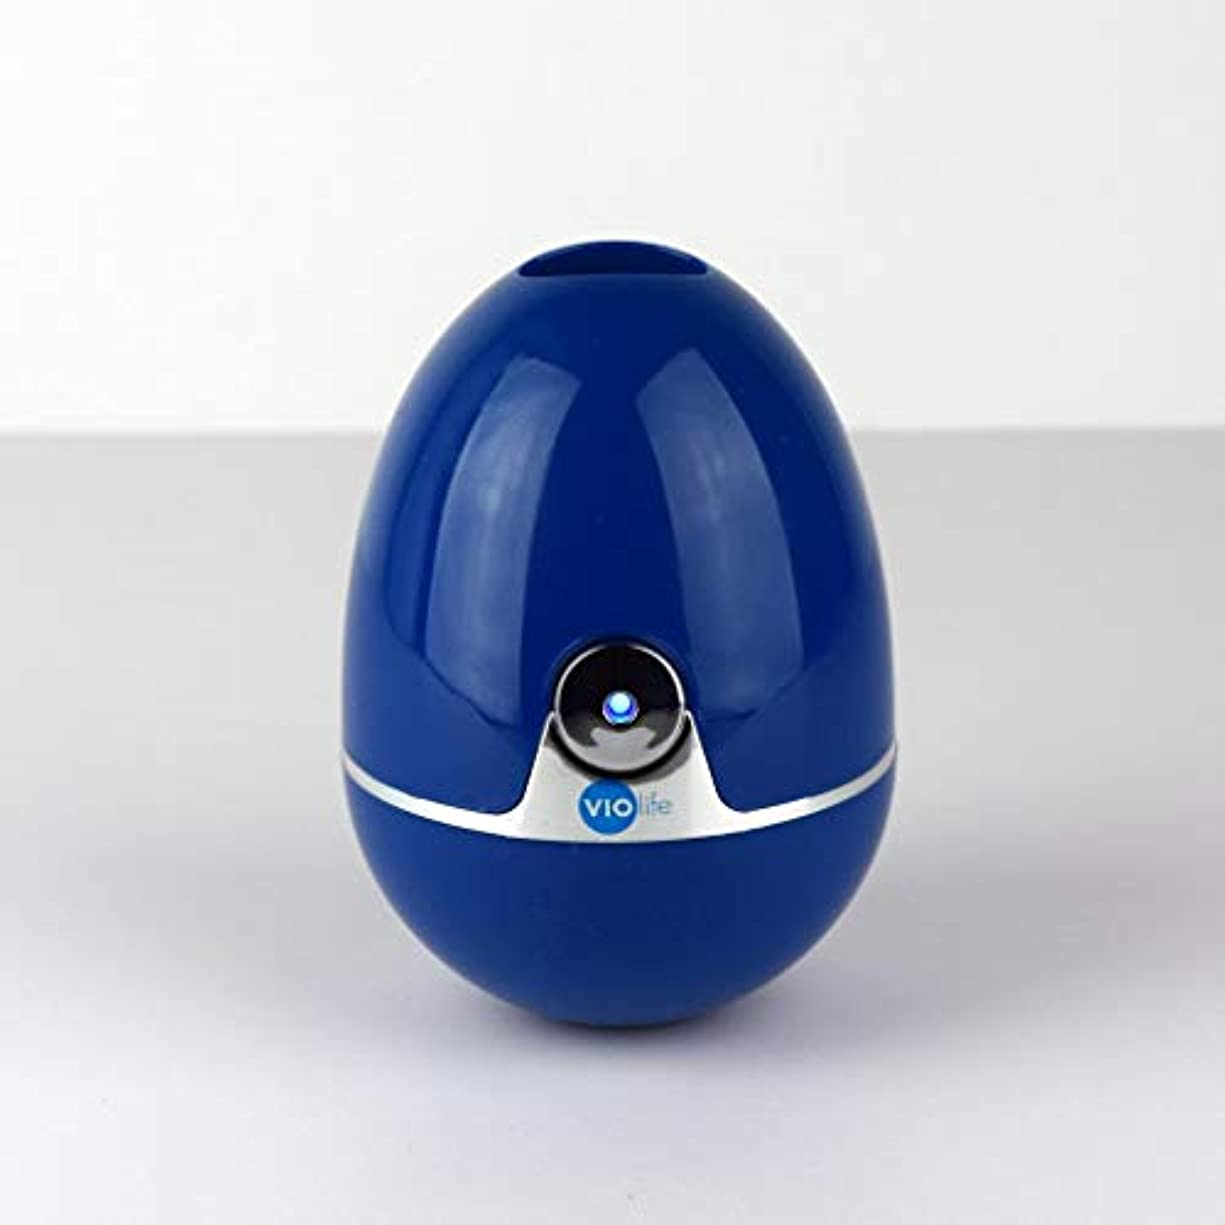 舗装する投げ捨てる鎮痛剤Zapi luxe UV Toothbrush Sanitizer Cobalt Blue